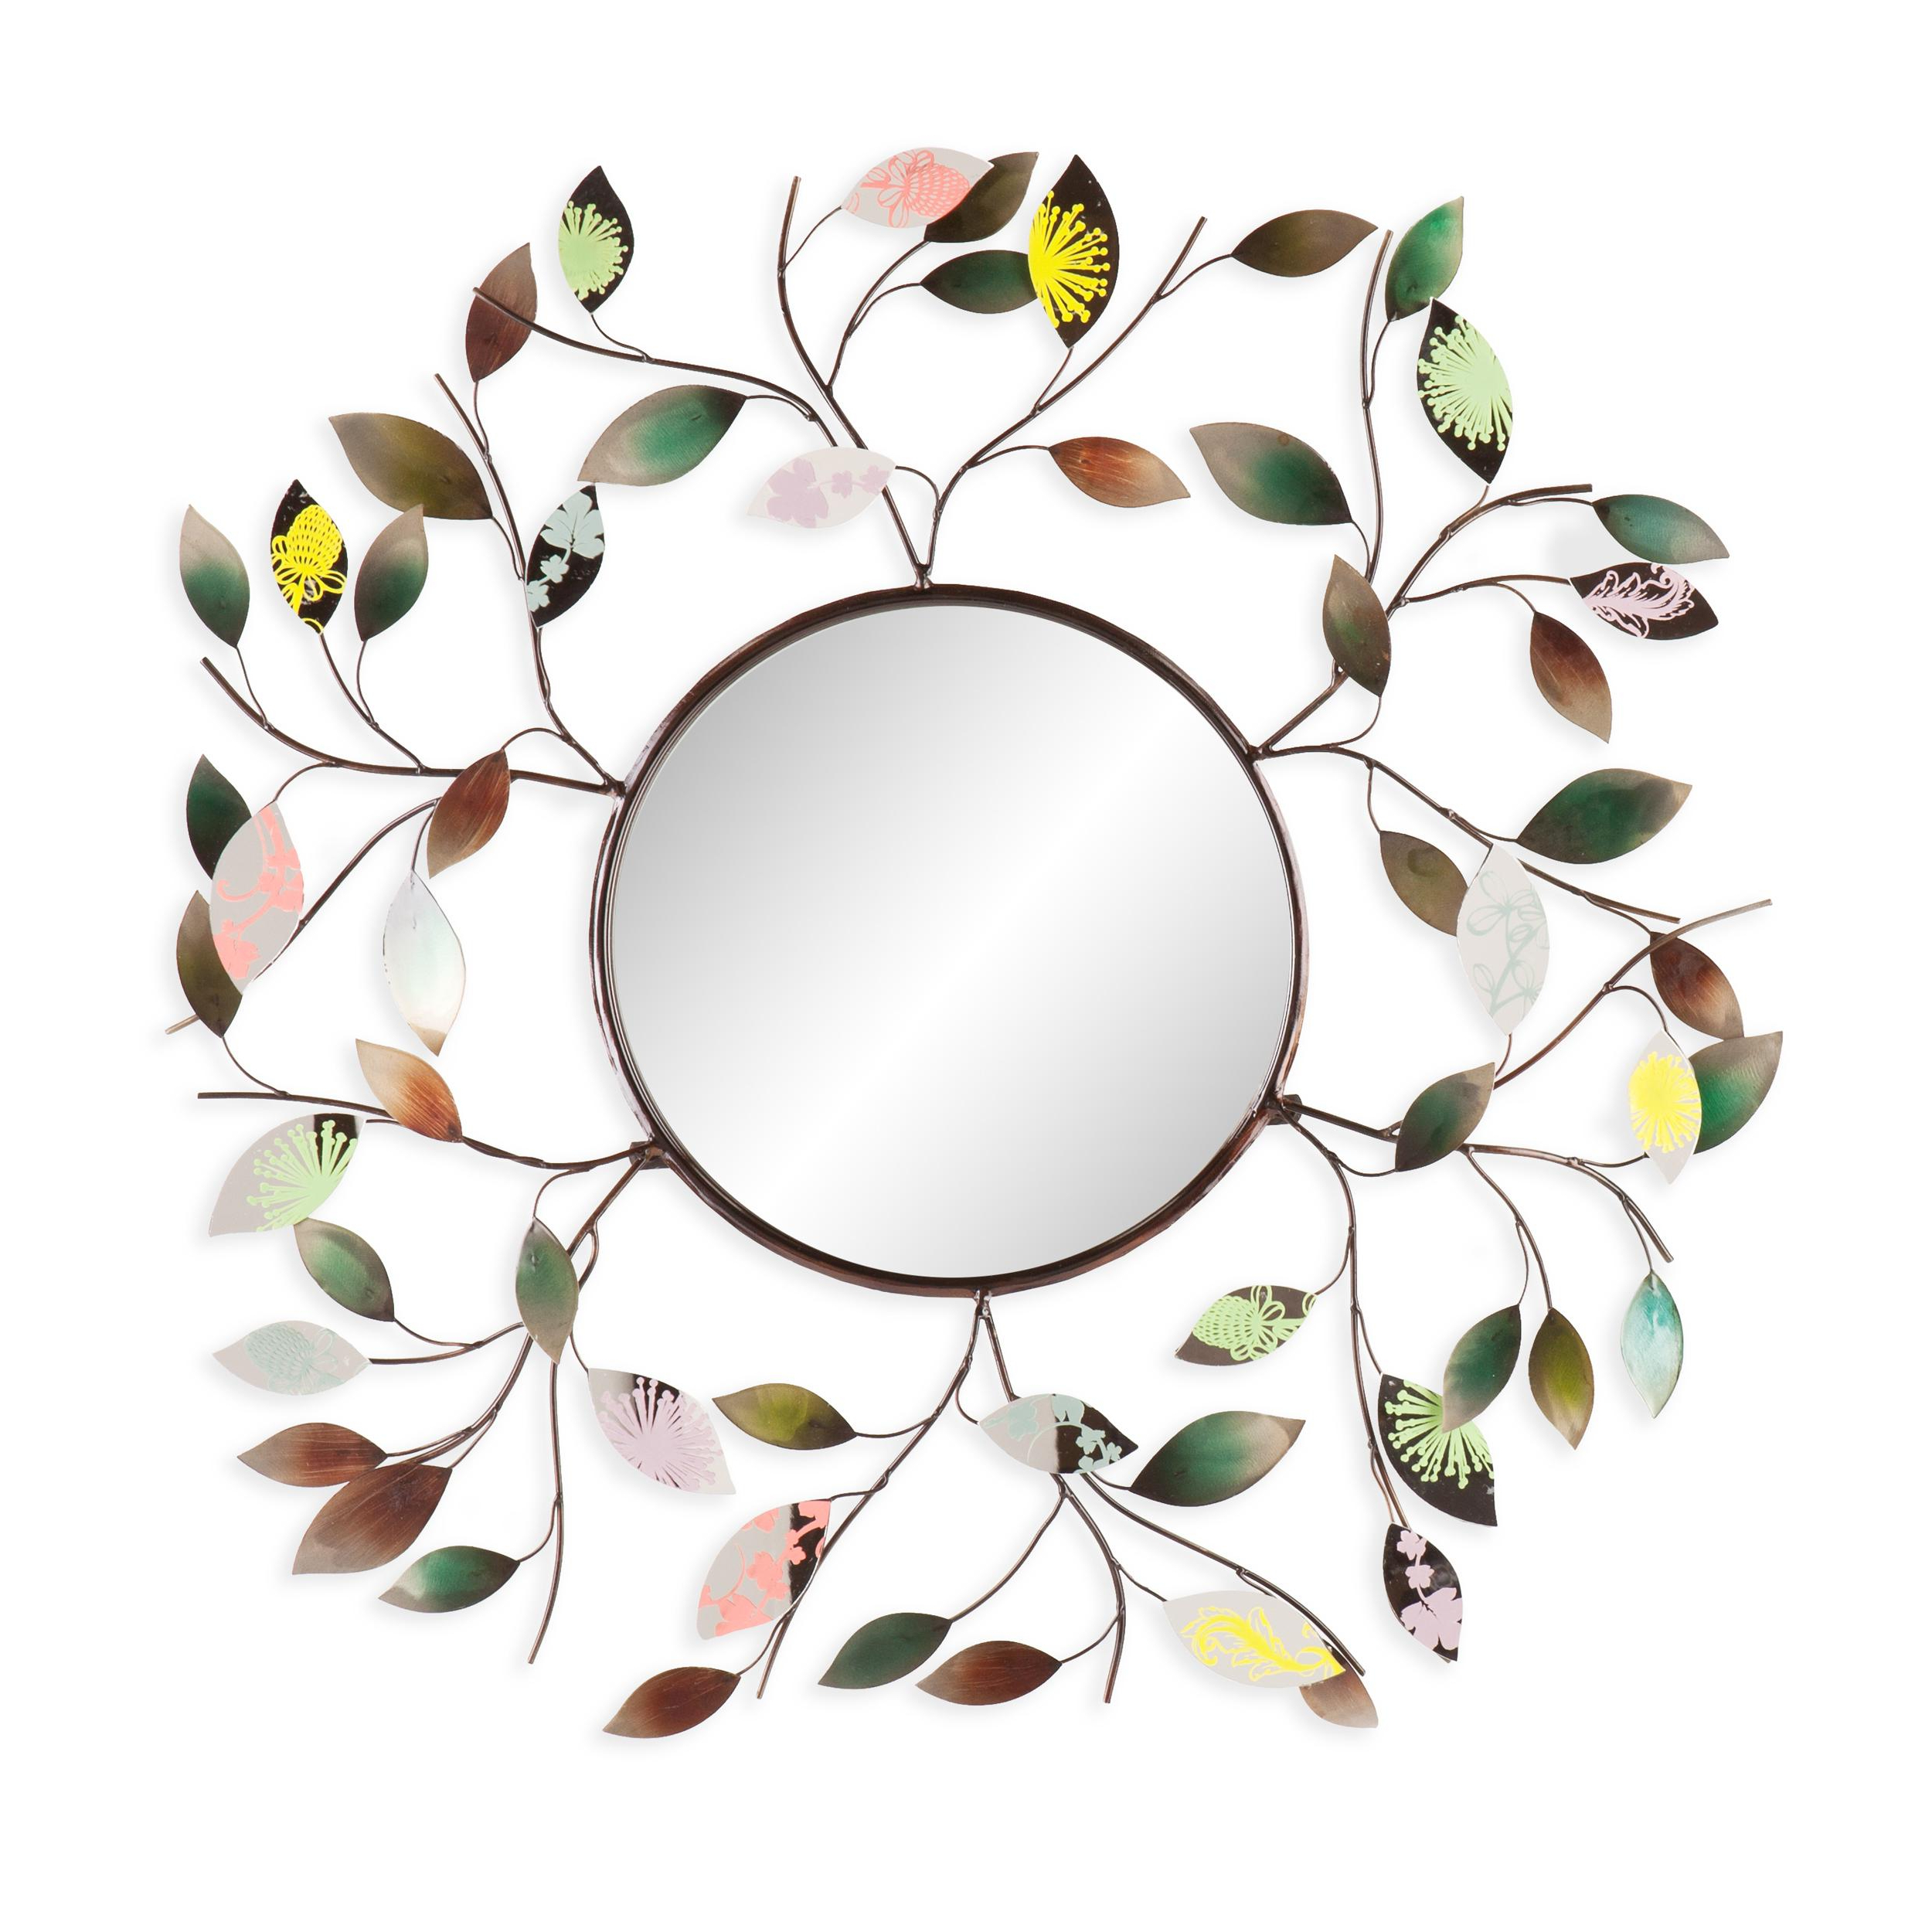 Round Eclectic Accent Mirrors Inside Most Up To Date Decorative Metallic Leaf Wall Mirror – 3d Leaf Hanging Art – Multicolored Eclectic Style (View 18 of 20)